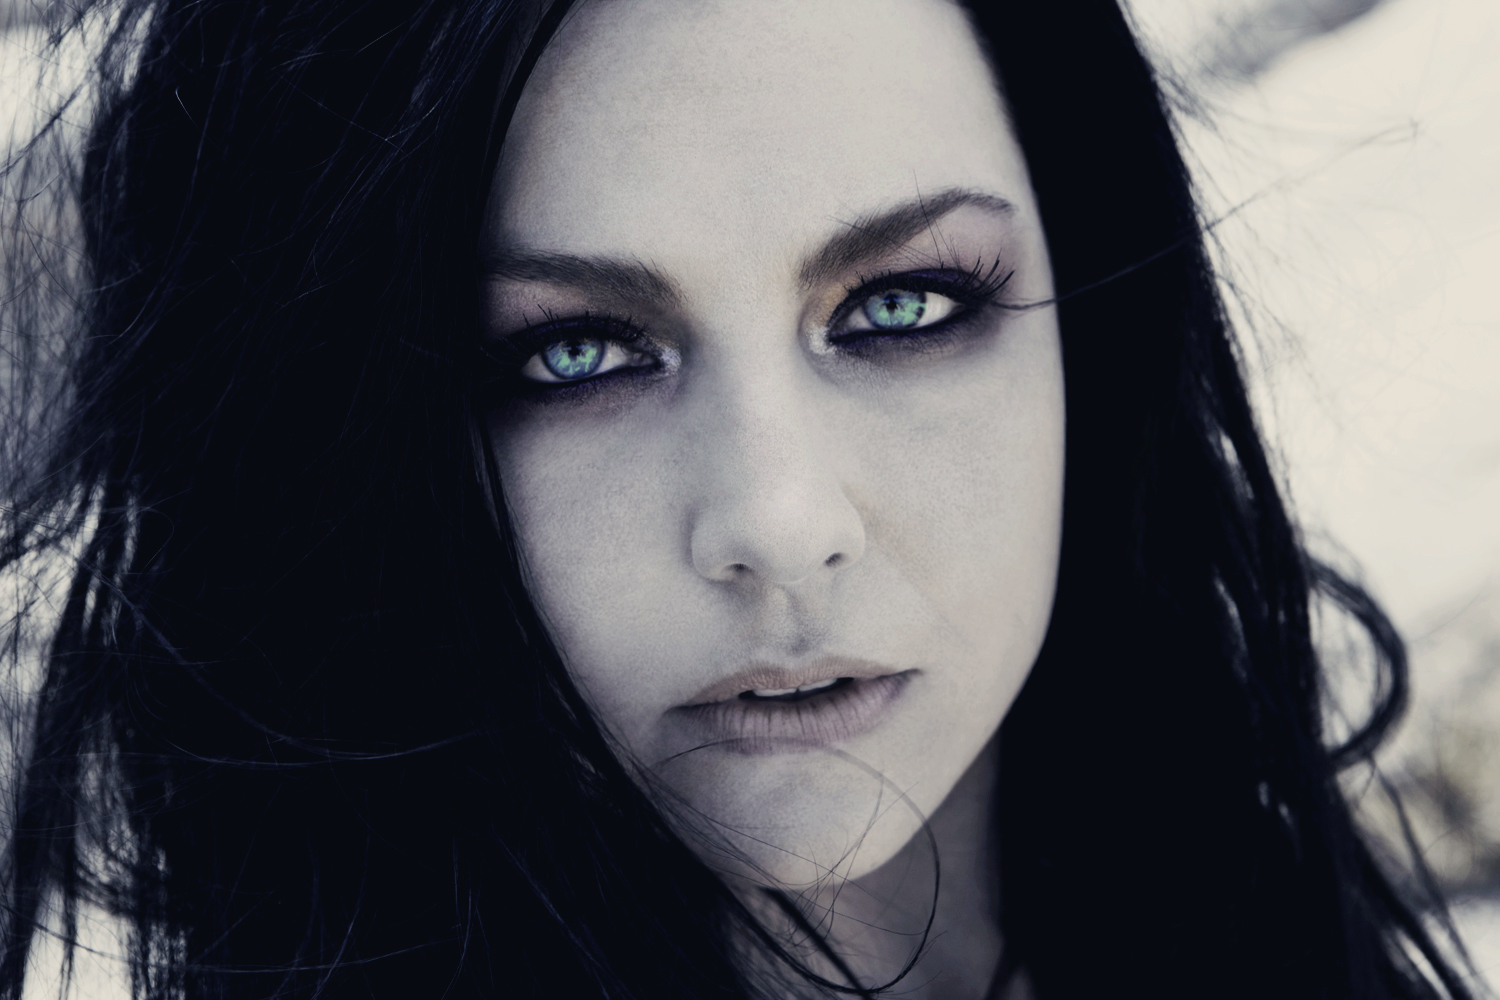 amy lee wikiamy lee love exists, amy lee speak to me, amy lee love exists скачать, amy lee dream too much, amy lee love exists перевод, amy lee 2016, amy lee love exists lyrics, amy lee broken, amy lee speak to me lyrics, amy lee sally's song, amy lee 2003, amy lee twitter, amy lee wiki, amy lee aftermath, amy lee сумки, amy lee with or without you, amy lee lockdown перевод, amy lee speak to me mp3, amy lee скачать, amy lee love